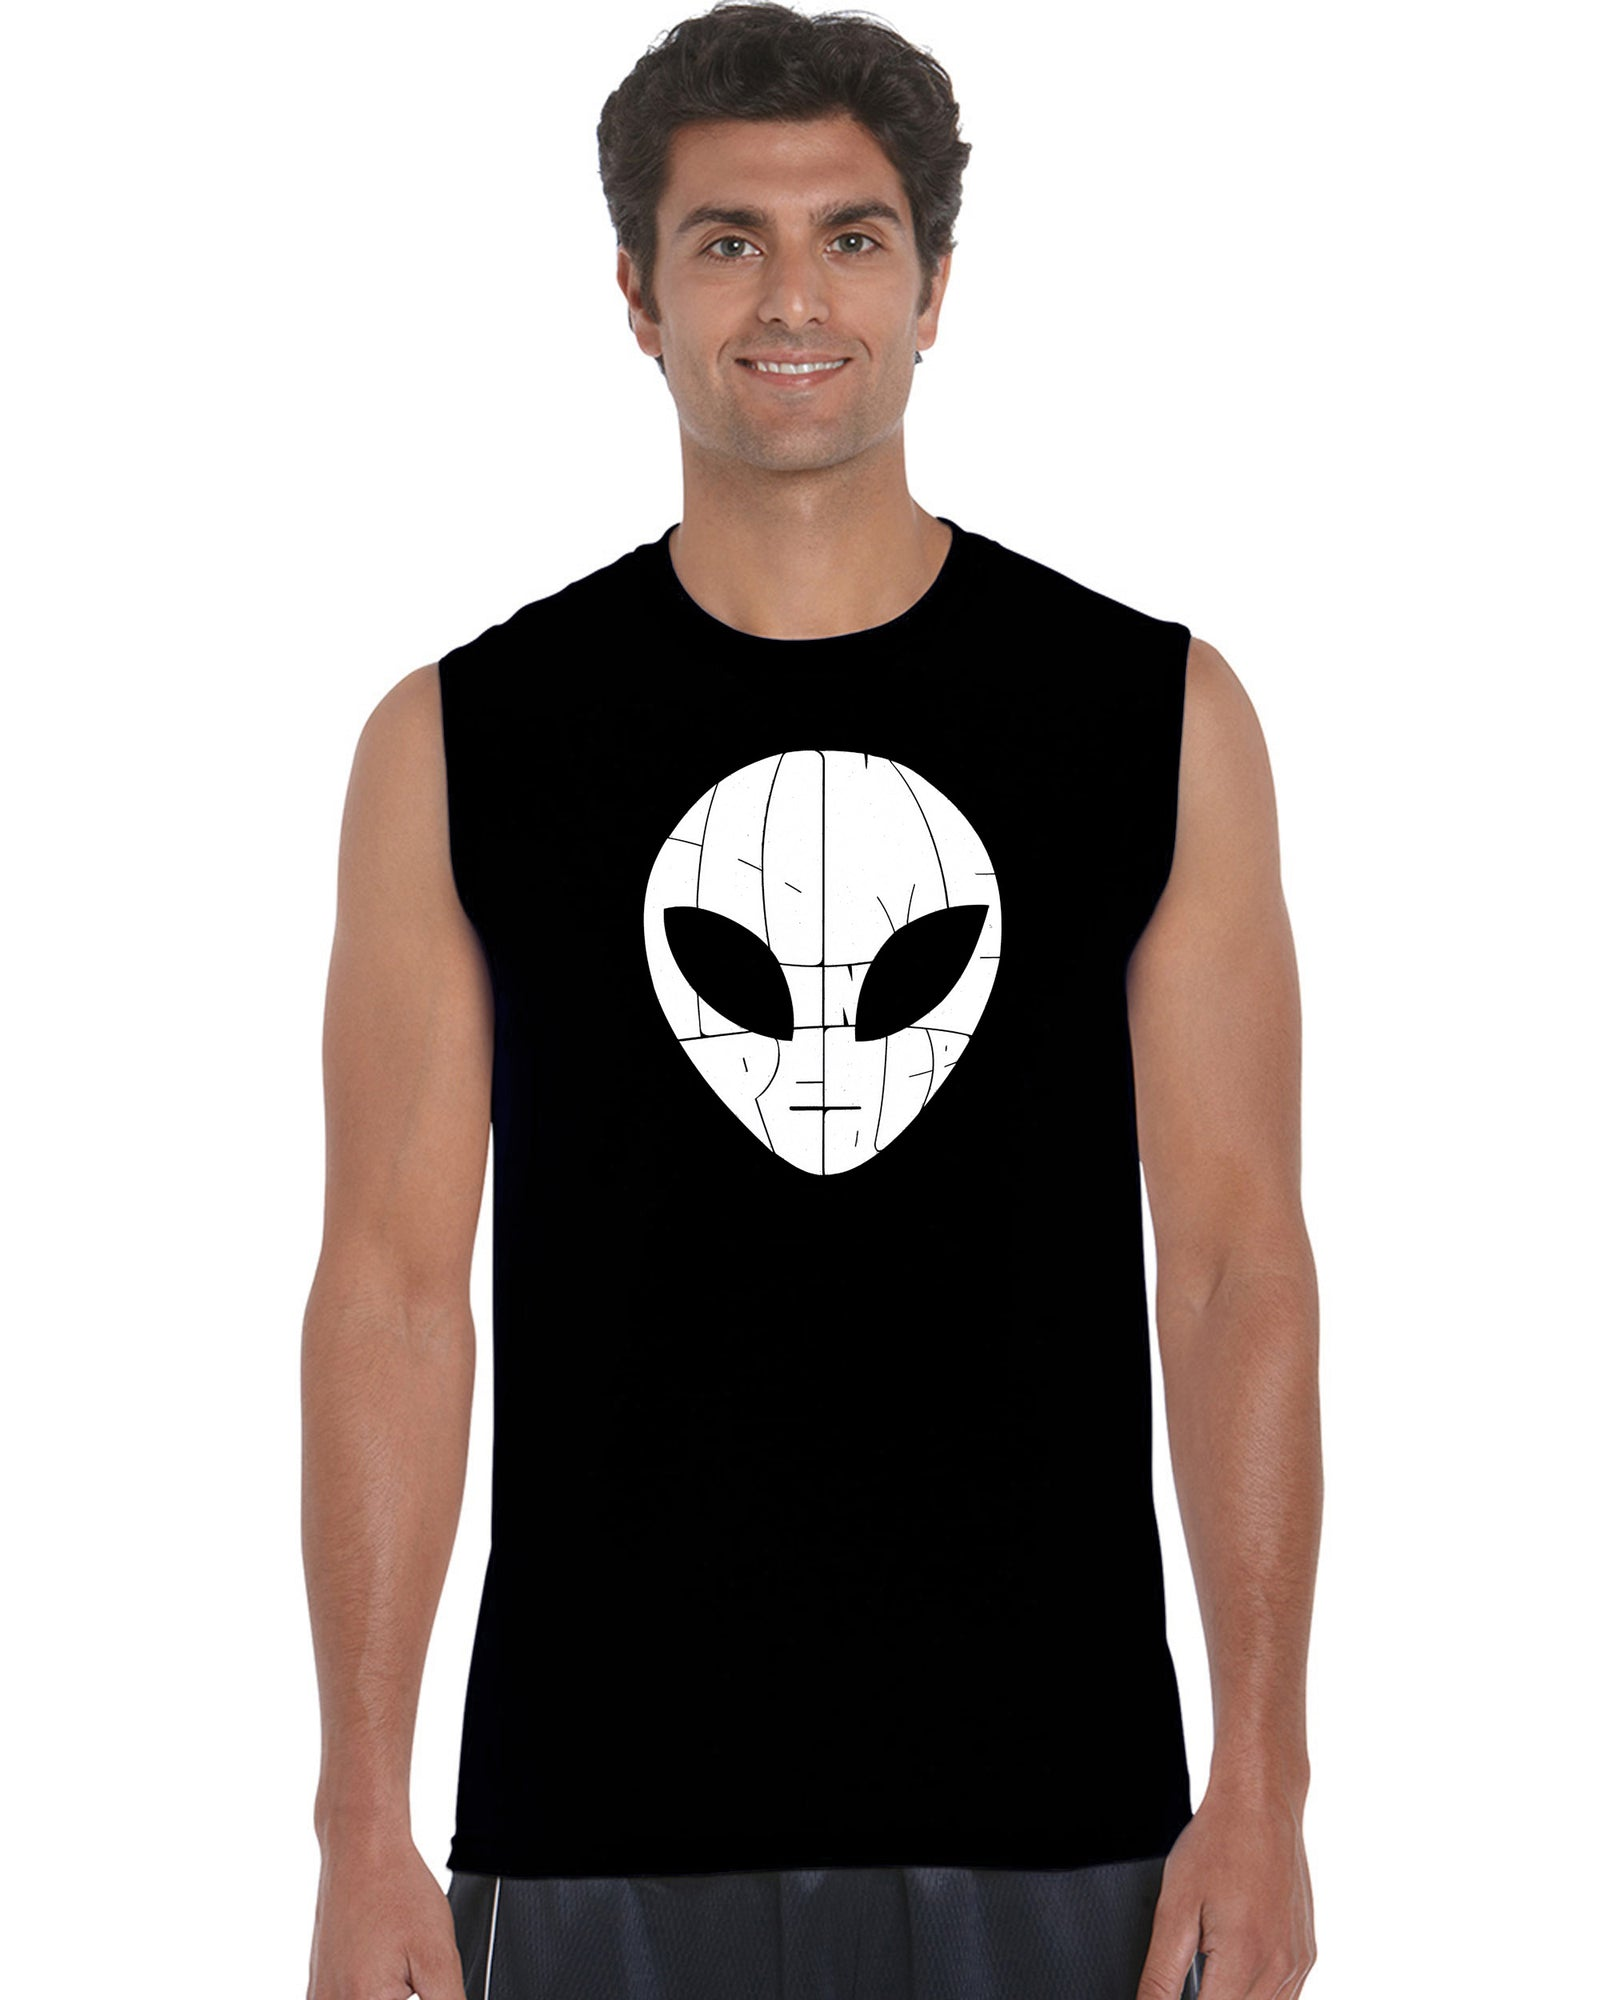 Men's Sleeveless T-shirt - I COME IN PEACE